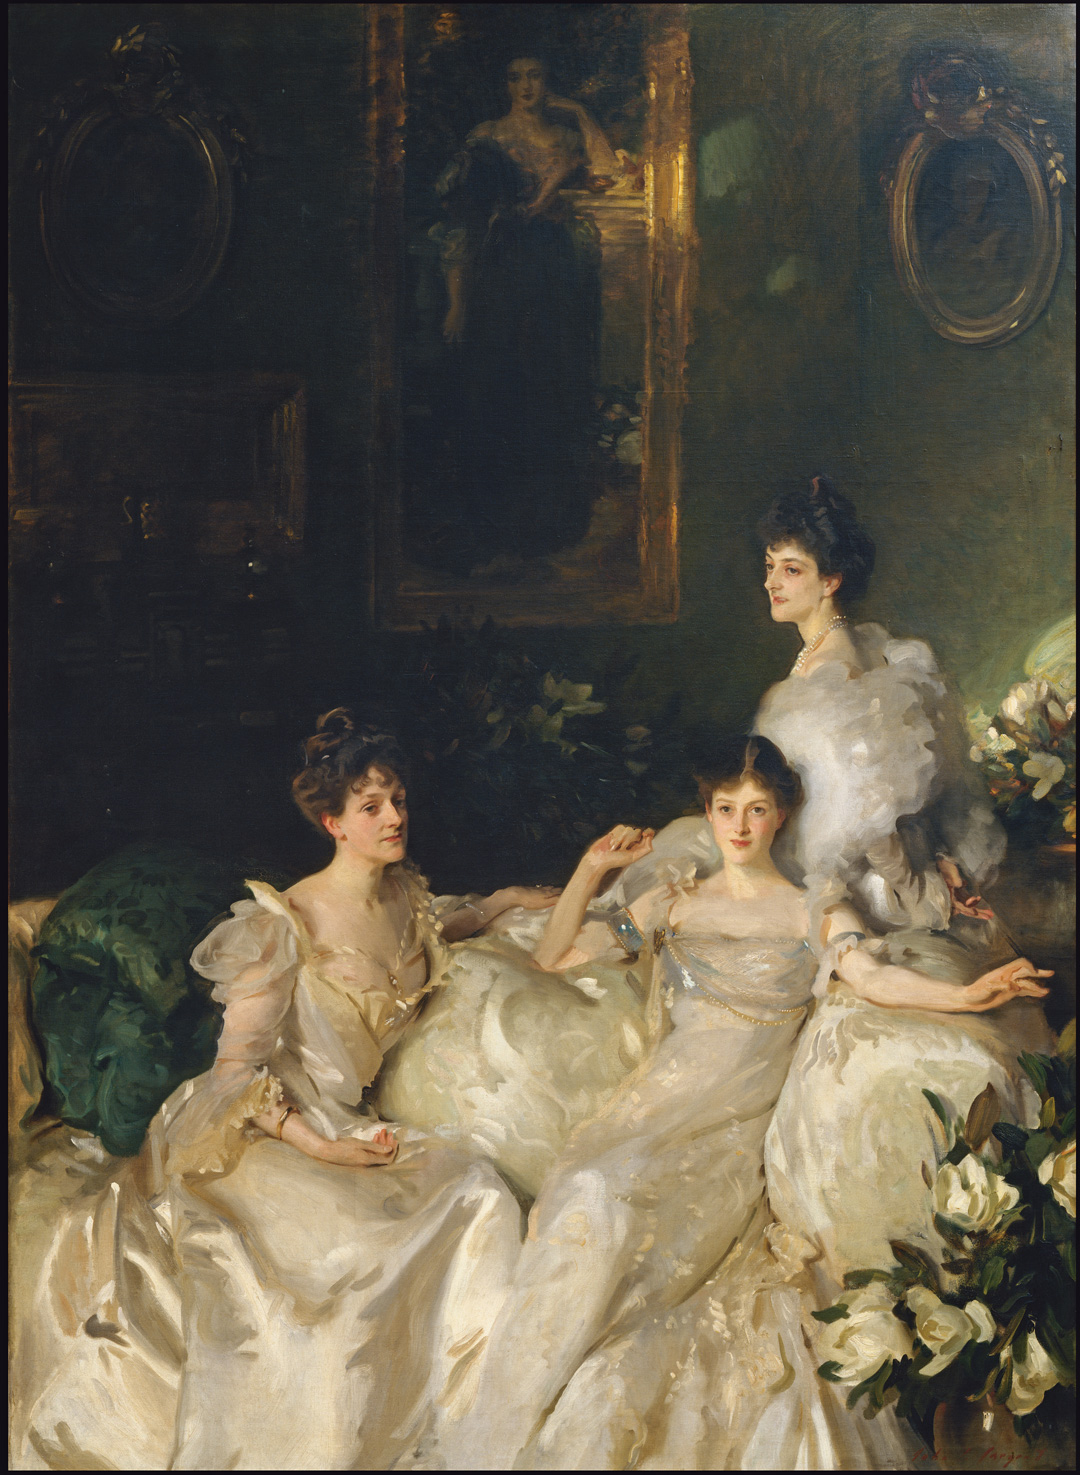 The Wyndham Sisters (1899) by John Singer Sargent, as featured in The Artist Project